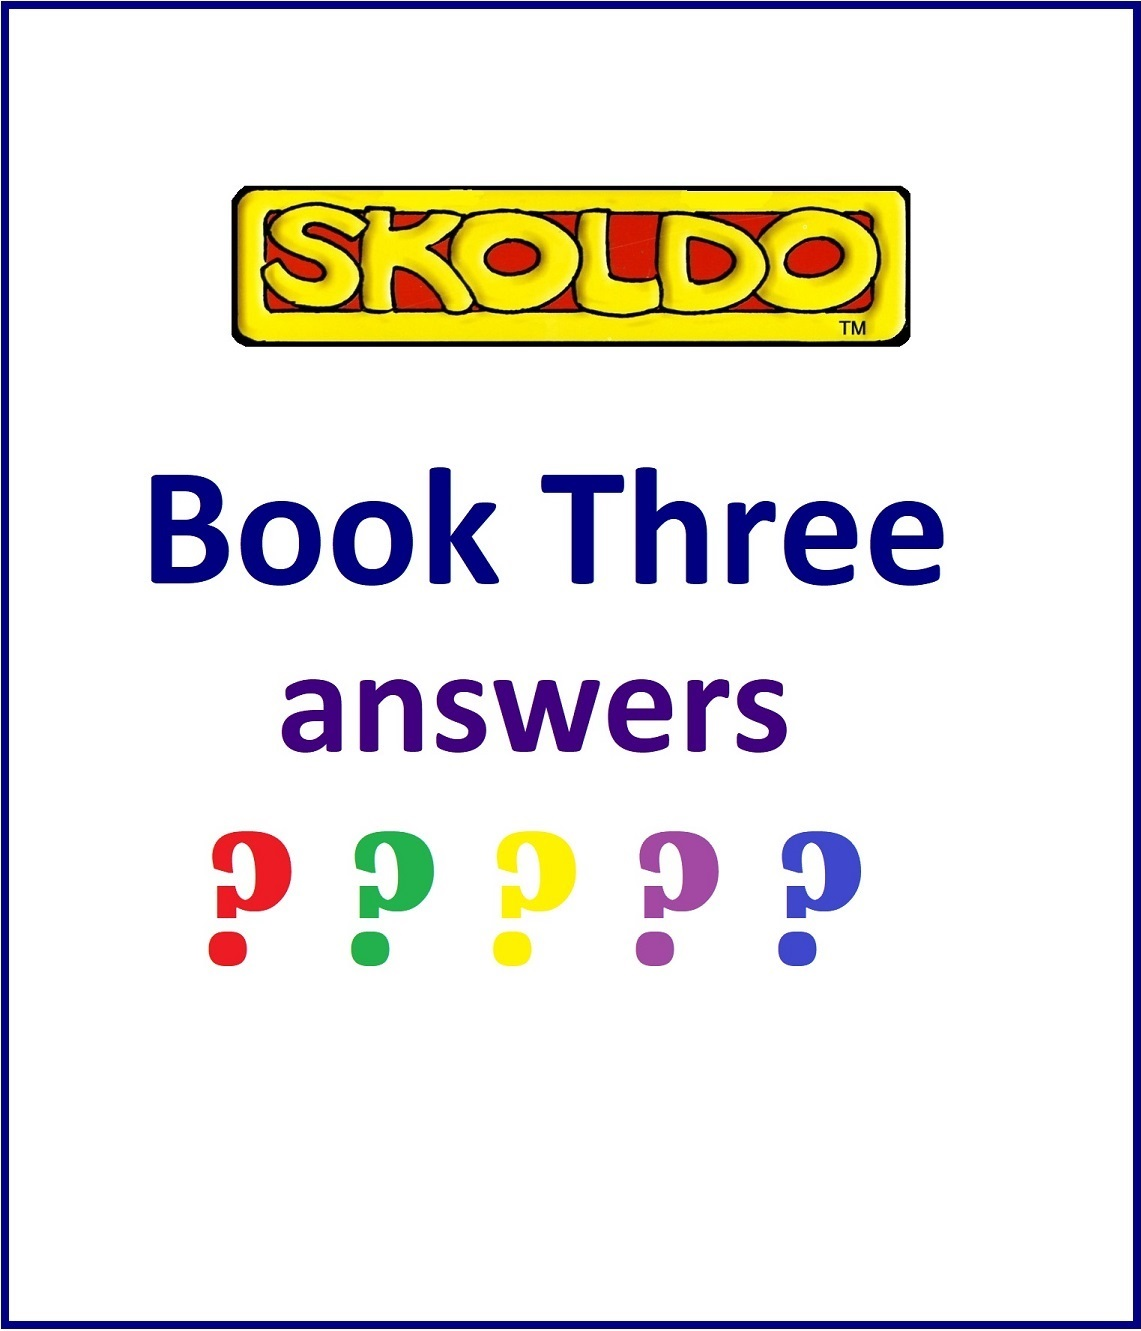 Skoldo-Book Three answers